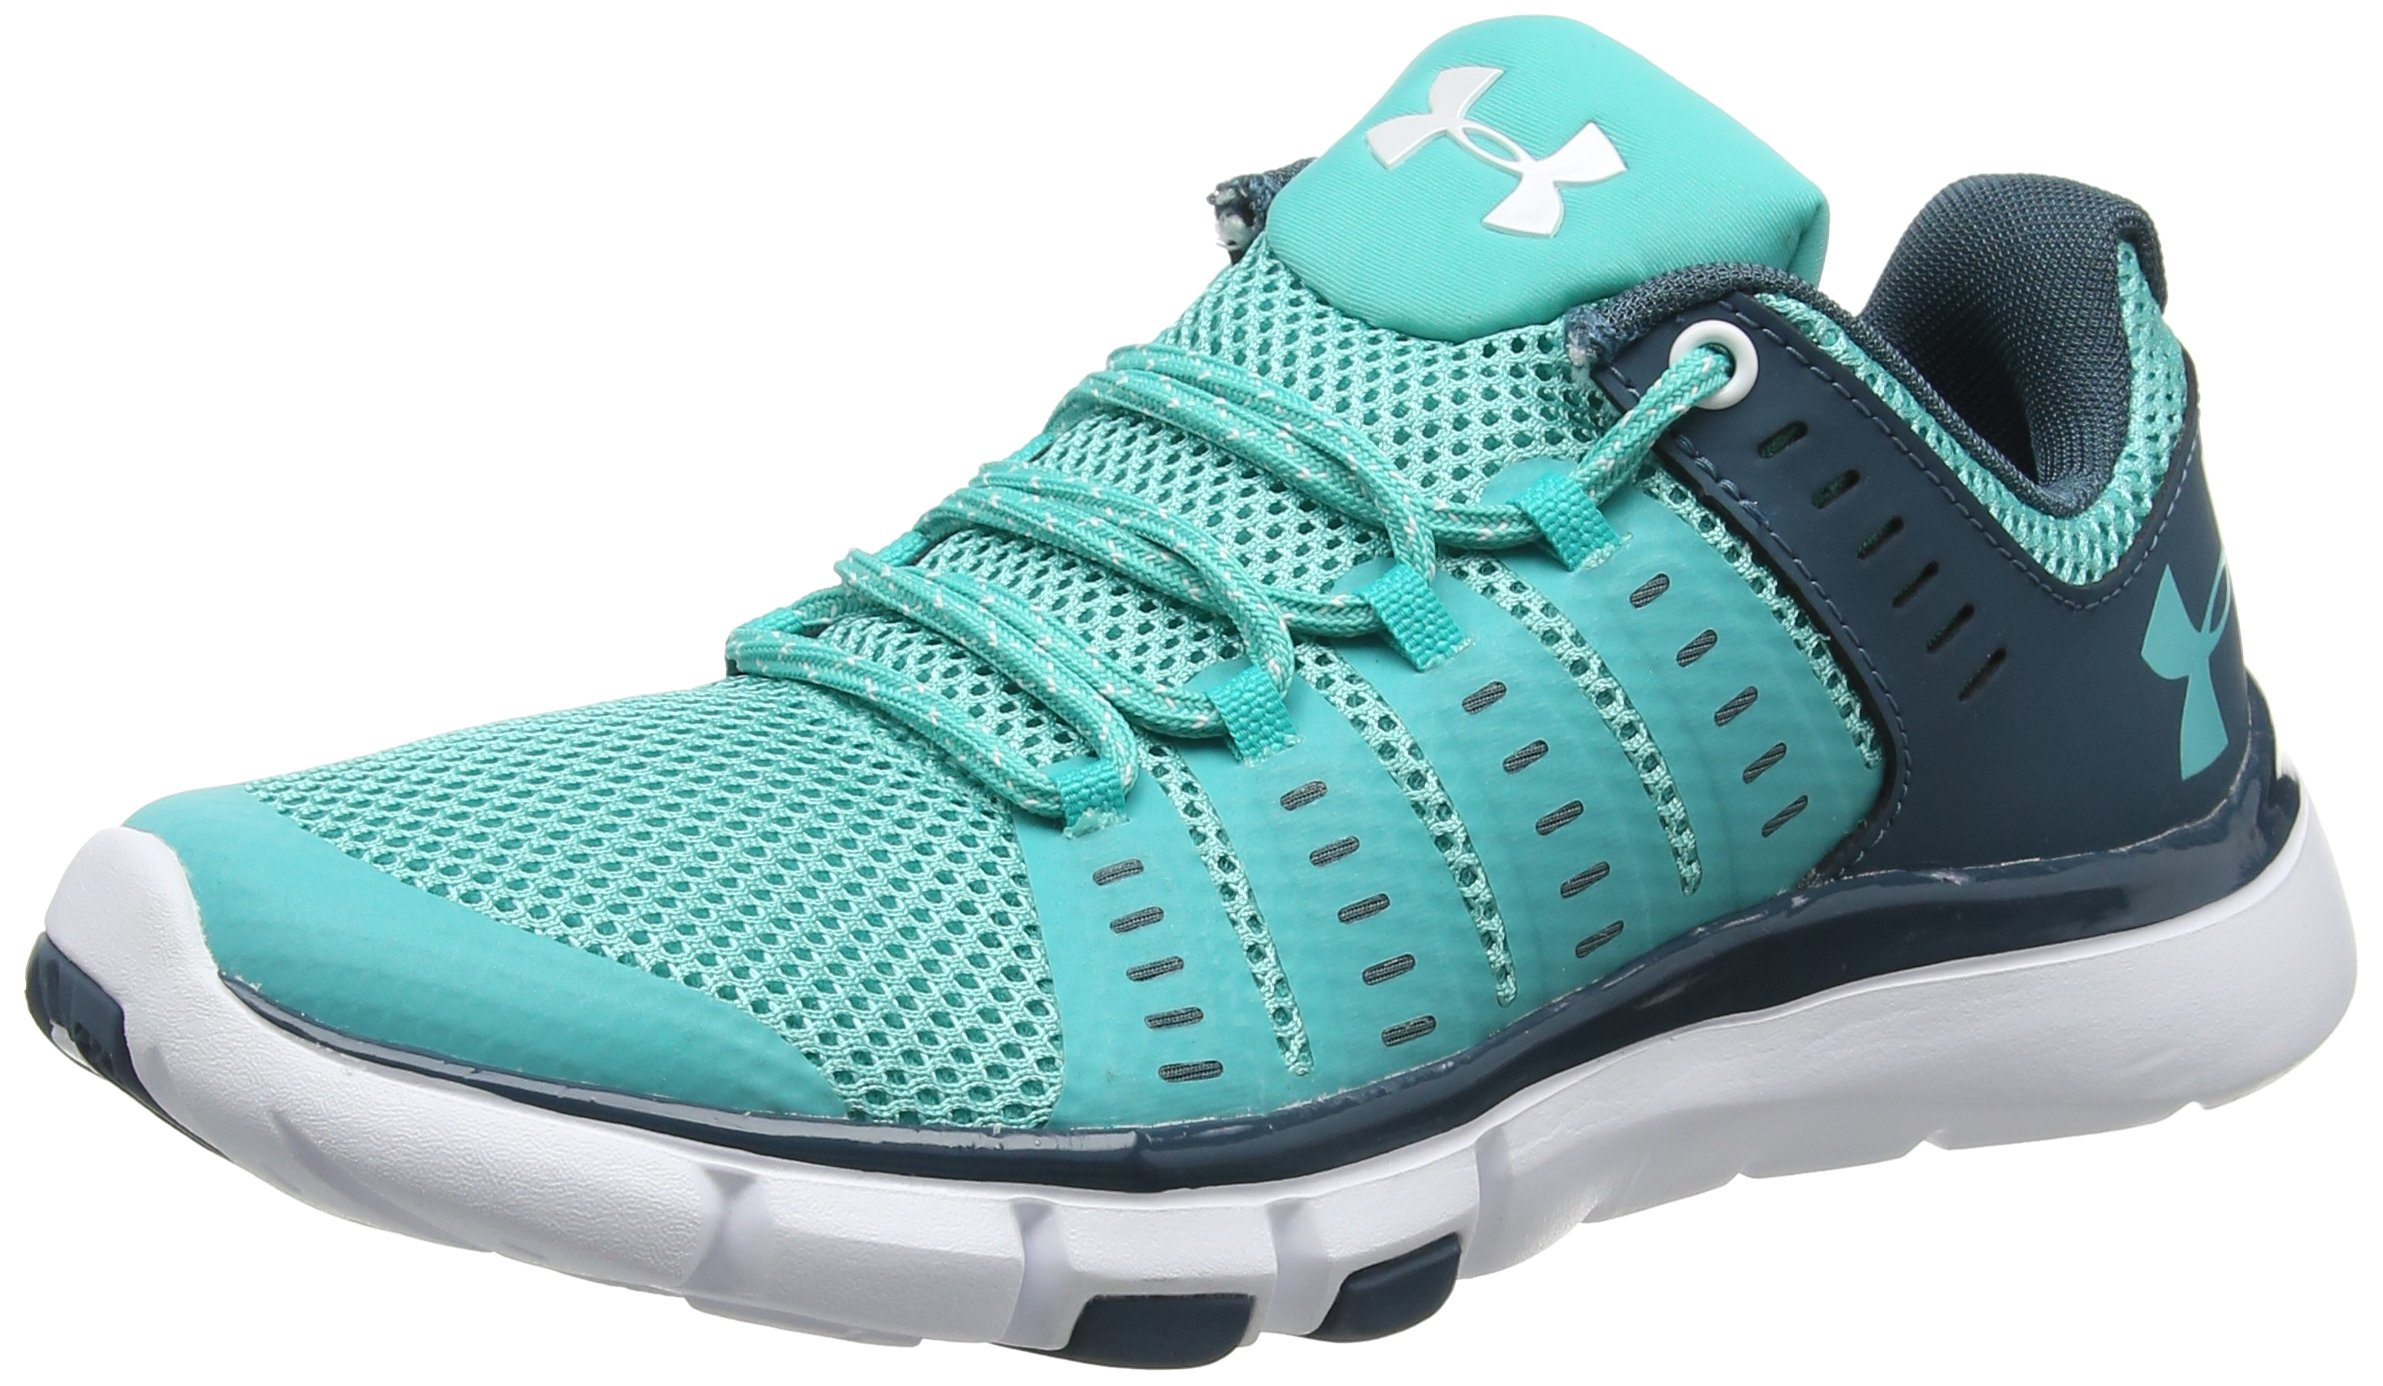 Under Armour Women's UA Micro G Limitless TR 2 Neptune/Marlin Blue/Neptune Athletic Shoe